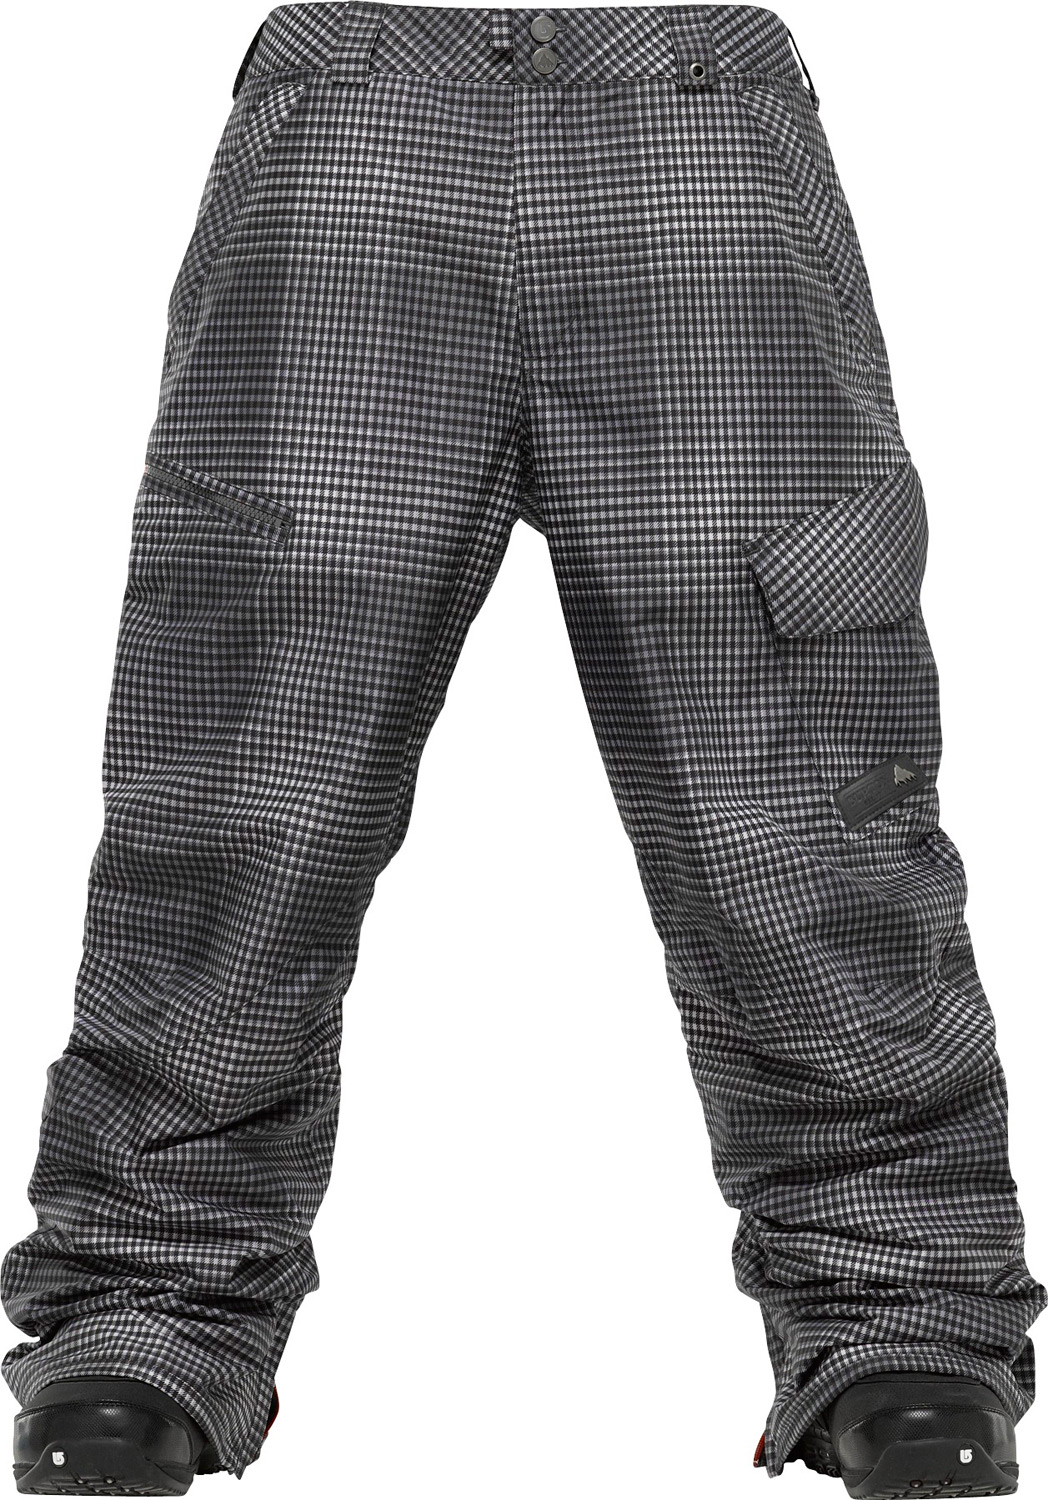 Snowboard Function for a fraction of the paycheck. Waterproof with optional warmth-the biggest bargain on the mountain.Key Features of the Burton Poacher Snowboard Pants: 10,000mm Waterproof 5,000g Breathability DRYRIDE Durashell 2-Layer Coated Fabric Sig Fit Printed Brushed Plain Weave Fabric (Gingham Fade Colorways) Printed Herringbone Fabric (Chalk Stripe Colorways) Raised Twill Fabric (Solid Colorways) Also available with NEW 3M Thinsulate Insulation (40G throughout) Size: XS-XXL Glove Loop Fully Taped Seams Embossed Taffeta Lining (Insulated Colorways) Cargo Pocket and Inset Zippered Stash Pocket Inner Thigh Vents Fully Taped Seams Headphone Cable Port Integrated Waist Adjustment NEW Antimicrobial Microfleece Fly and Waistband Key Clip Ghetto Slits Snap-Up Leg Lifts Keep Your Cuffs Scuff-Free DRYRIDE Fabrication with DWR Coating Microfleece-Lined Handwarmer Pockets Articulated Knees Engineered Lining Bomber YKK Zippers Denim Shank Closure Jacket-to-Pant Interface Taped Seams Boot Gaiter with Gripper Elastic Cuffs Pass Pocket/Ticket O-Ring Butt Pockets Belt Loops Microfleece-Lined Fly and Waistband Ghetto Slits - $90.95